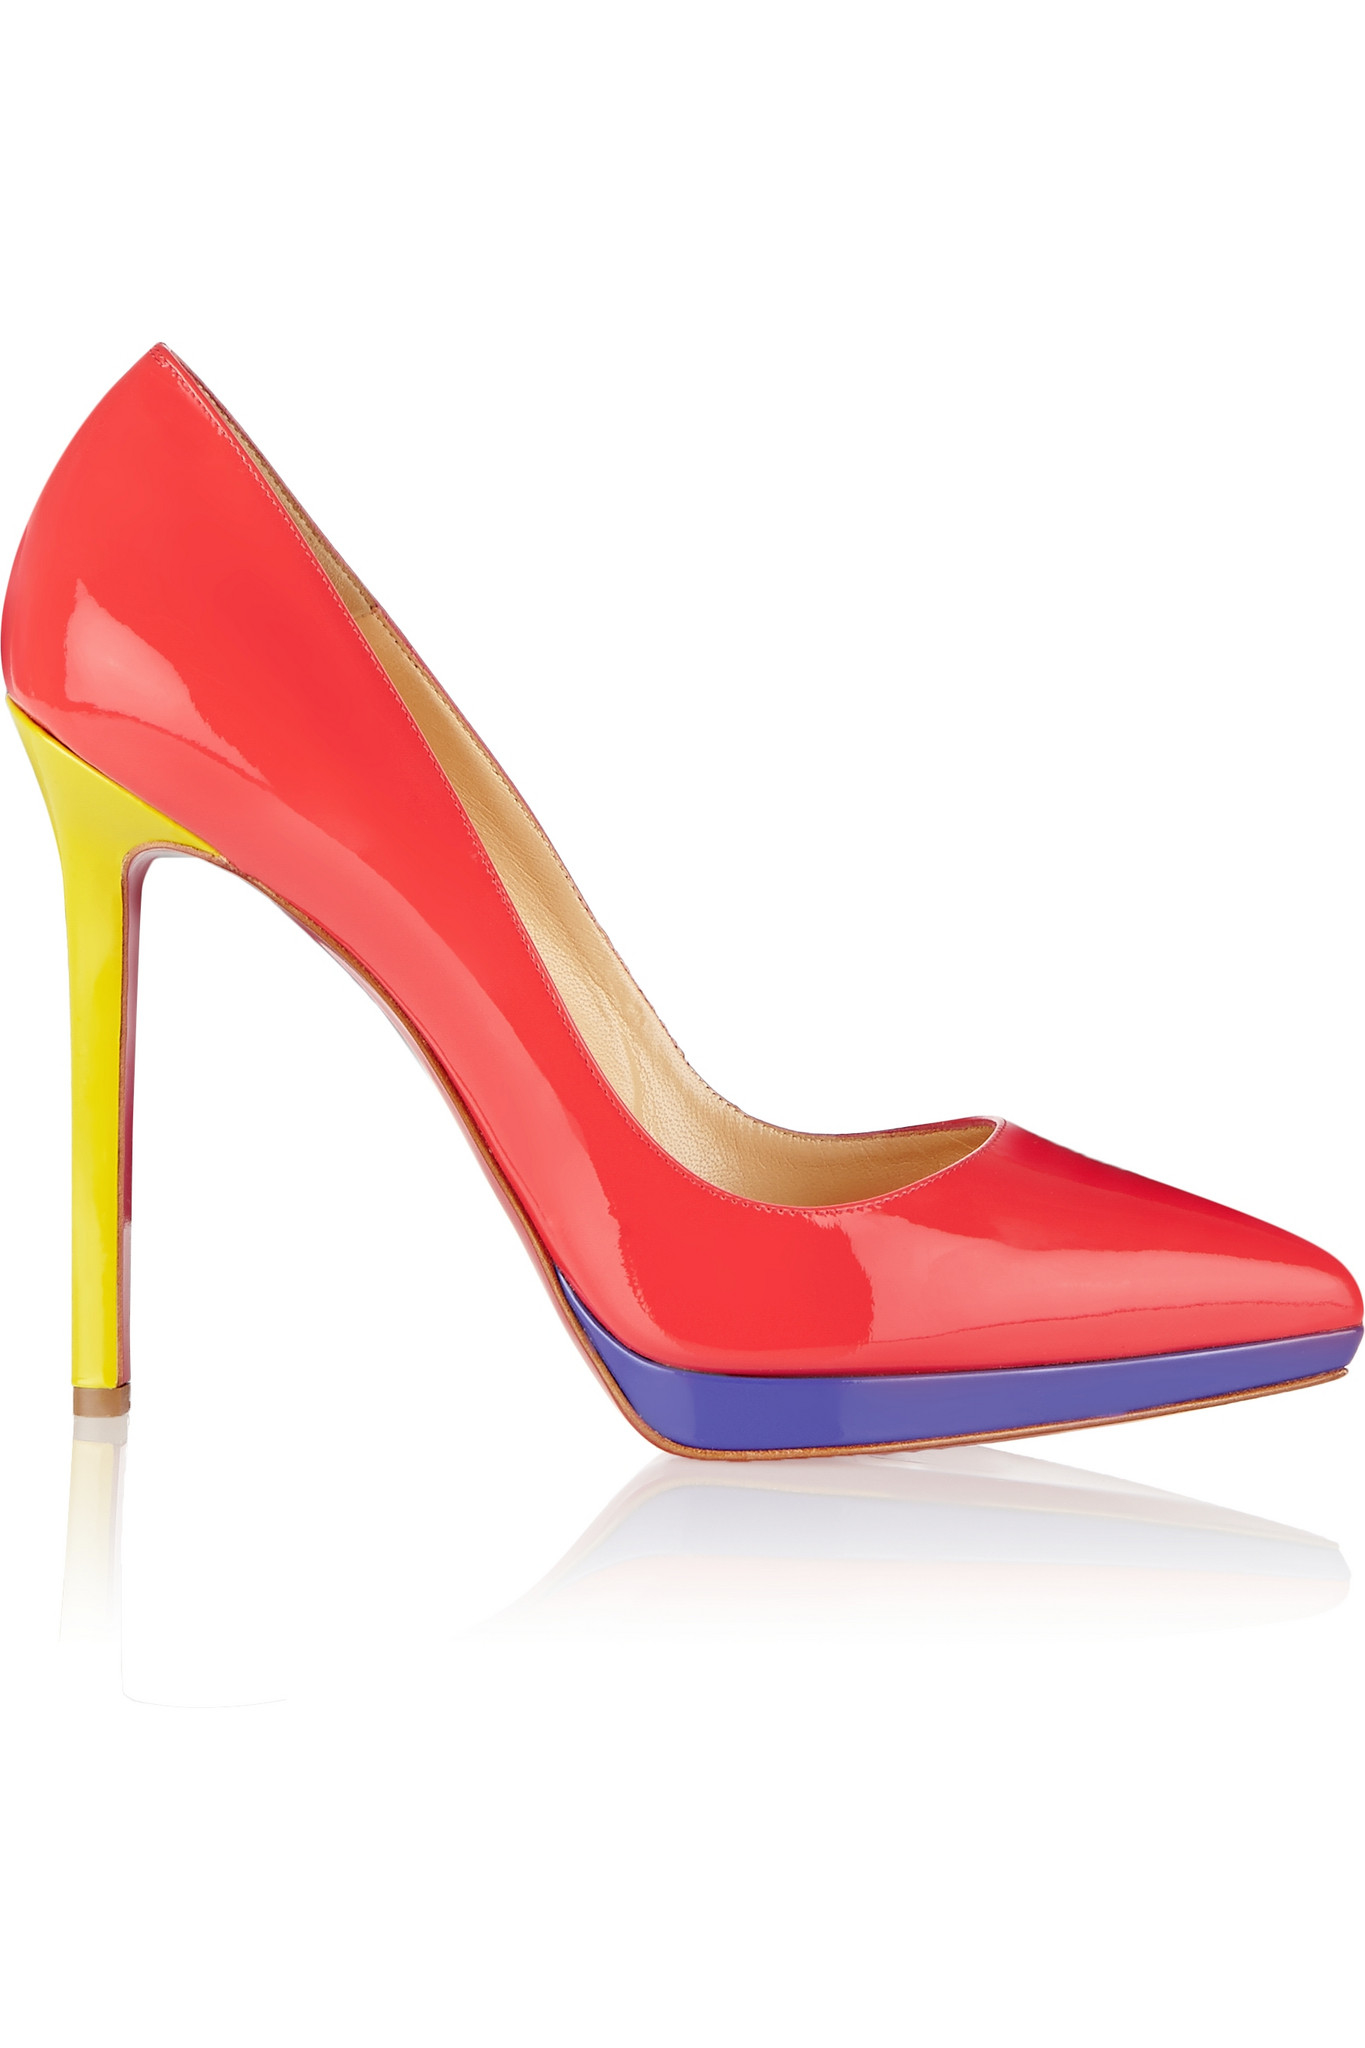 2c433d0ed633 Lyst - Christian Louboutin Pigalle Plato 120 Patent-leather Pumps in ...